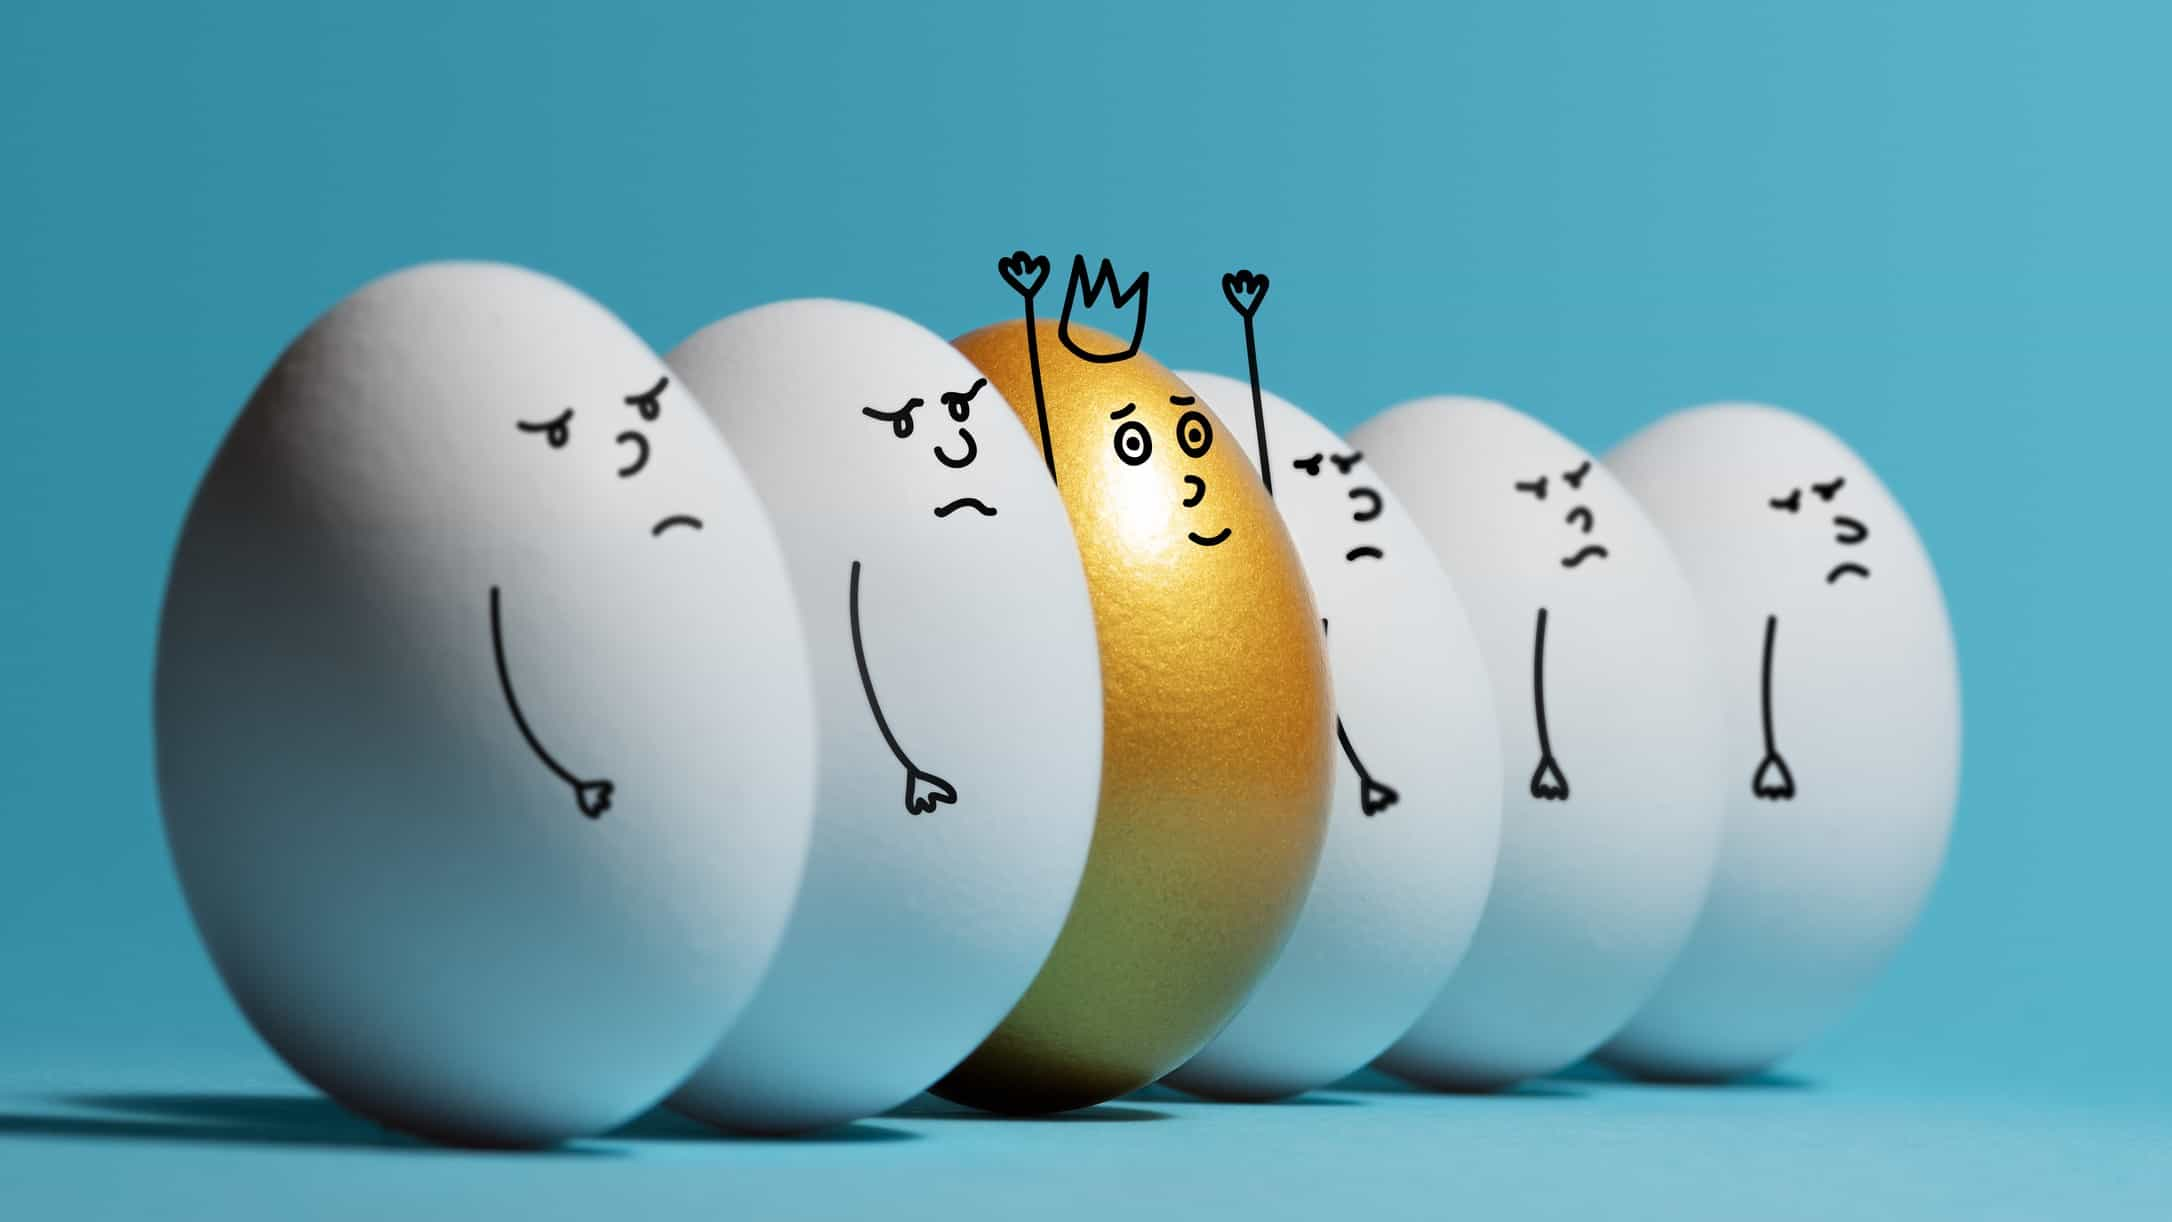 outperforming asx share price represented by row of white eggs with cartoon sad faces with one gold egg with happy face and crown